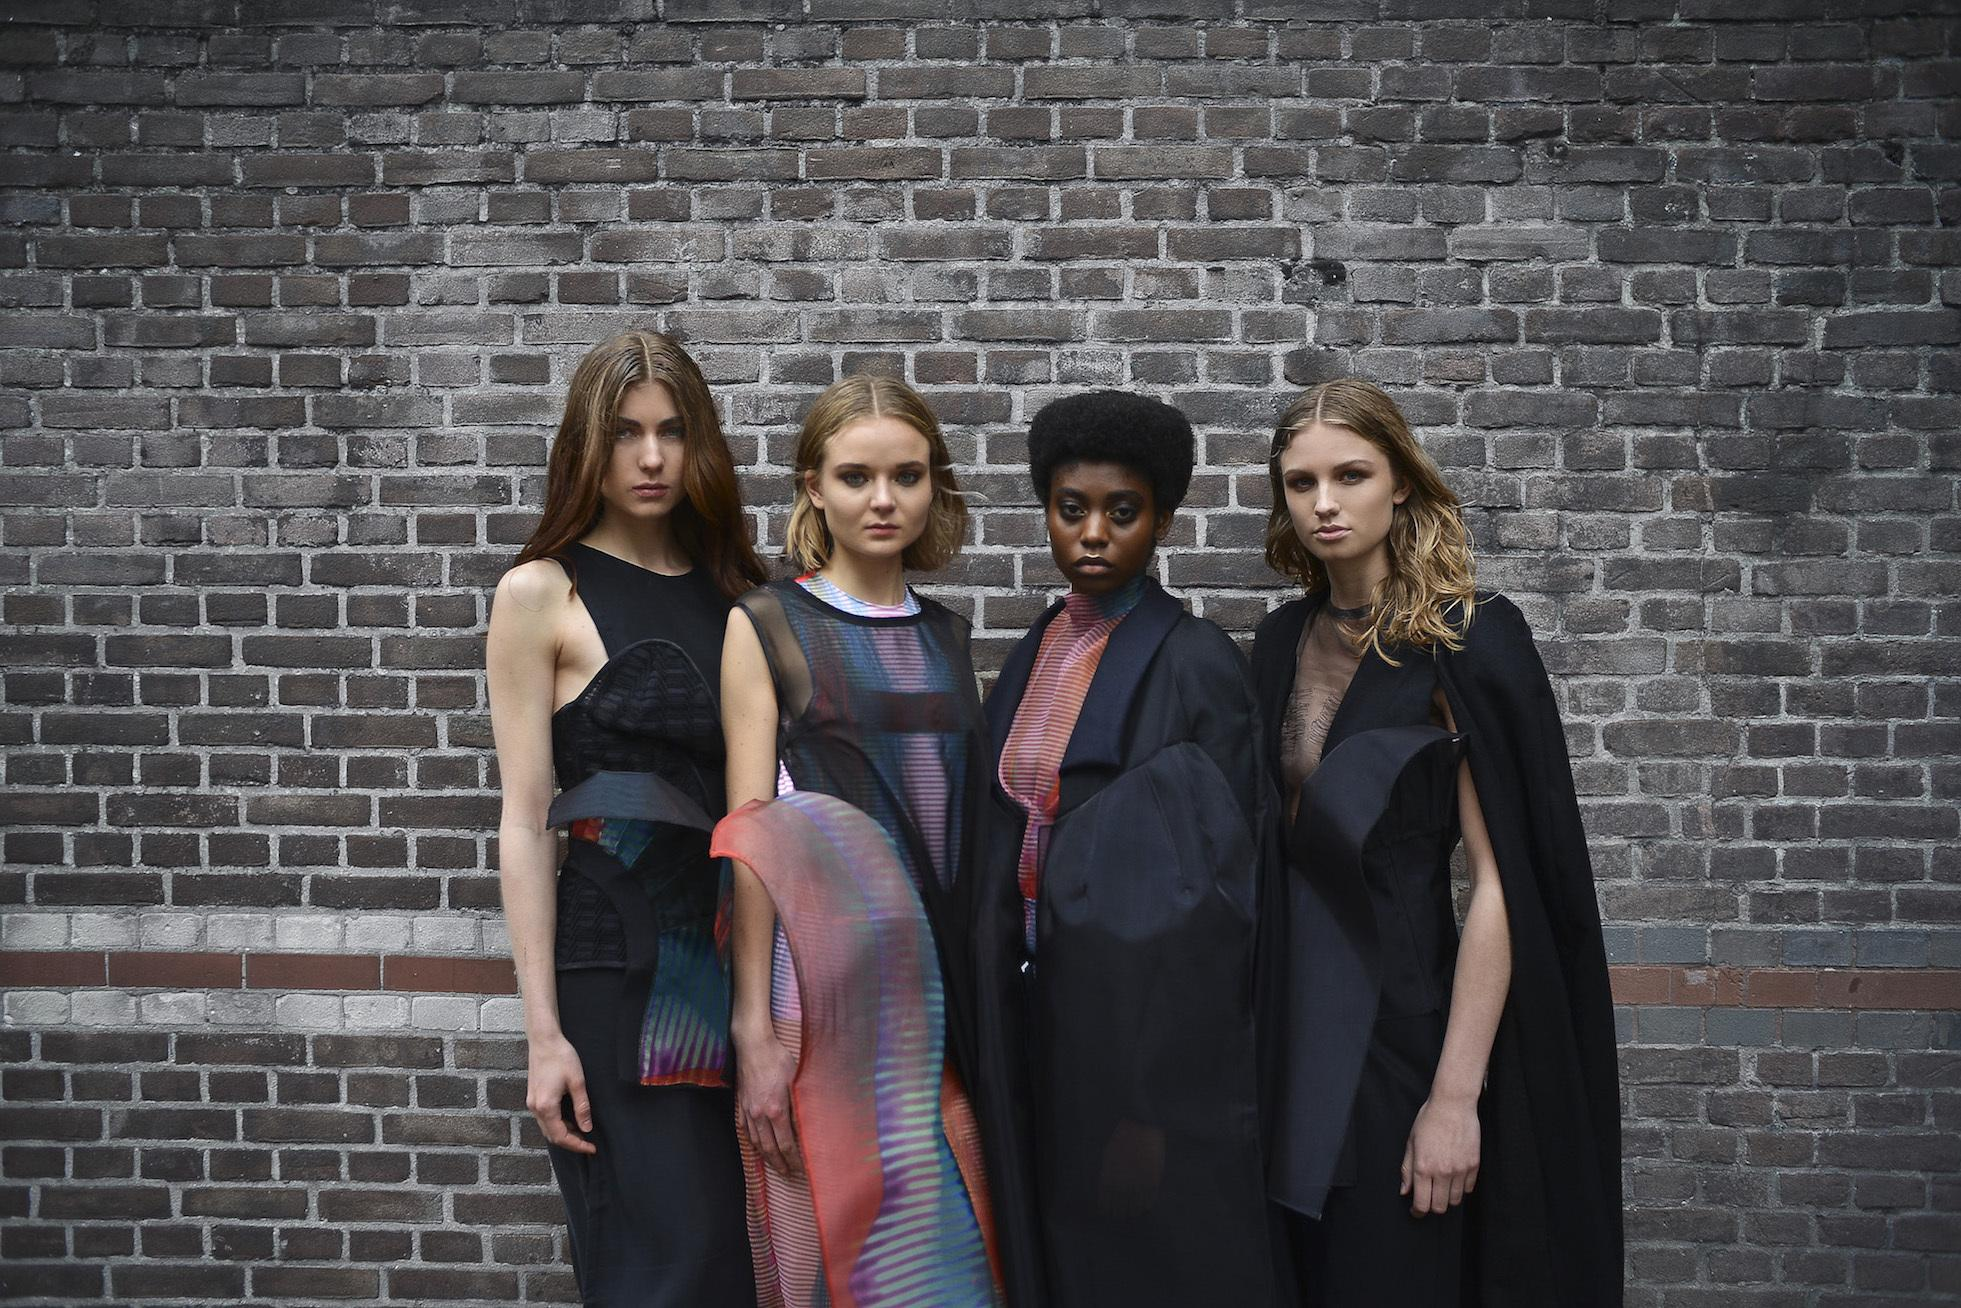 I-D.VICE.COM THE NETHERLANDS Source:  https://i-d.vice.com/nl/article/the-graduates-2016-koninklijke-academie-van-beeldende-kunsten?utm_source=idfbned